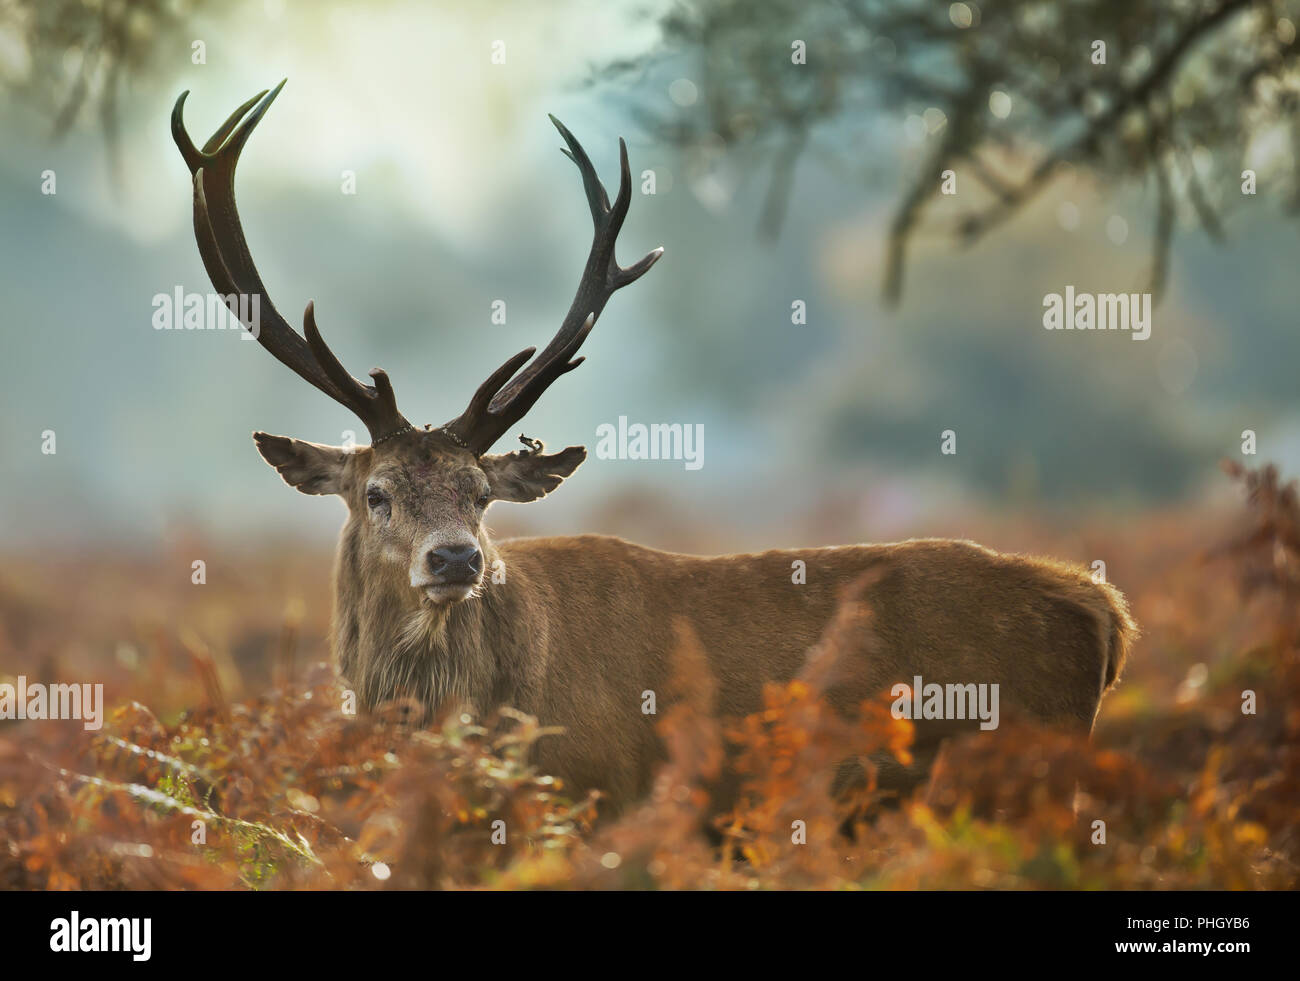 Close-up of a red deer stag with an injured ear during rutting season, UK. - Stock Image